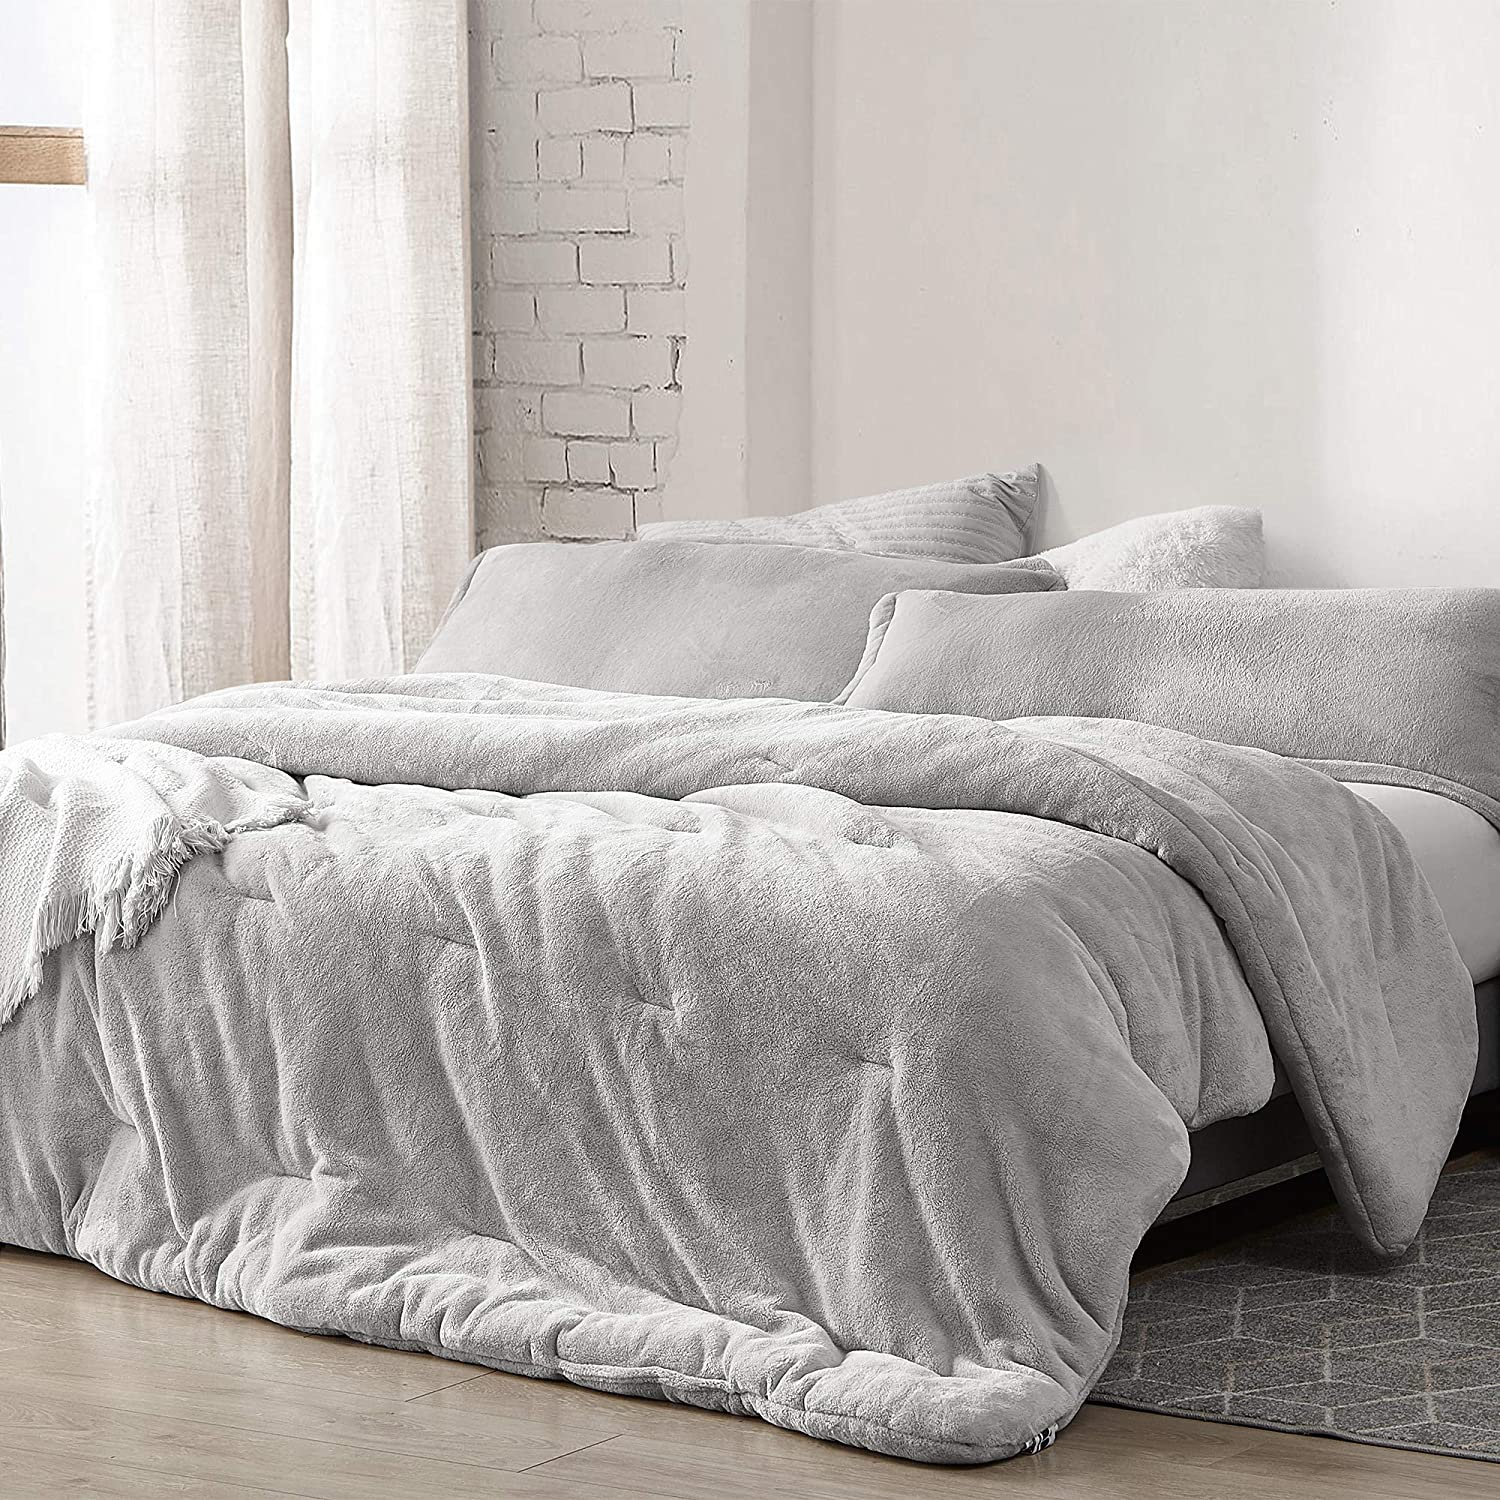 Byourbed Coma Inducer Oversized お金を節約 King - 卸直営 Comfy Sooo Comforter Me